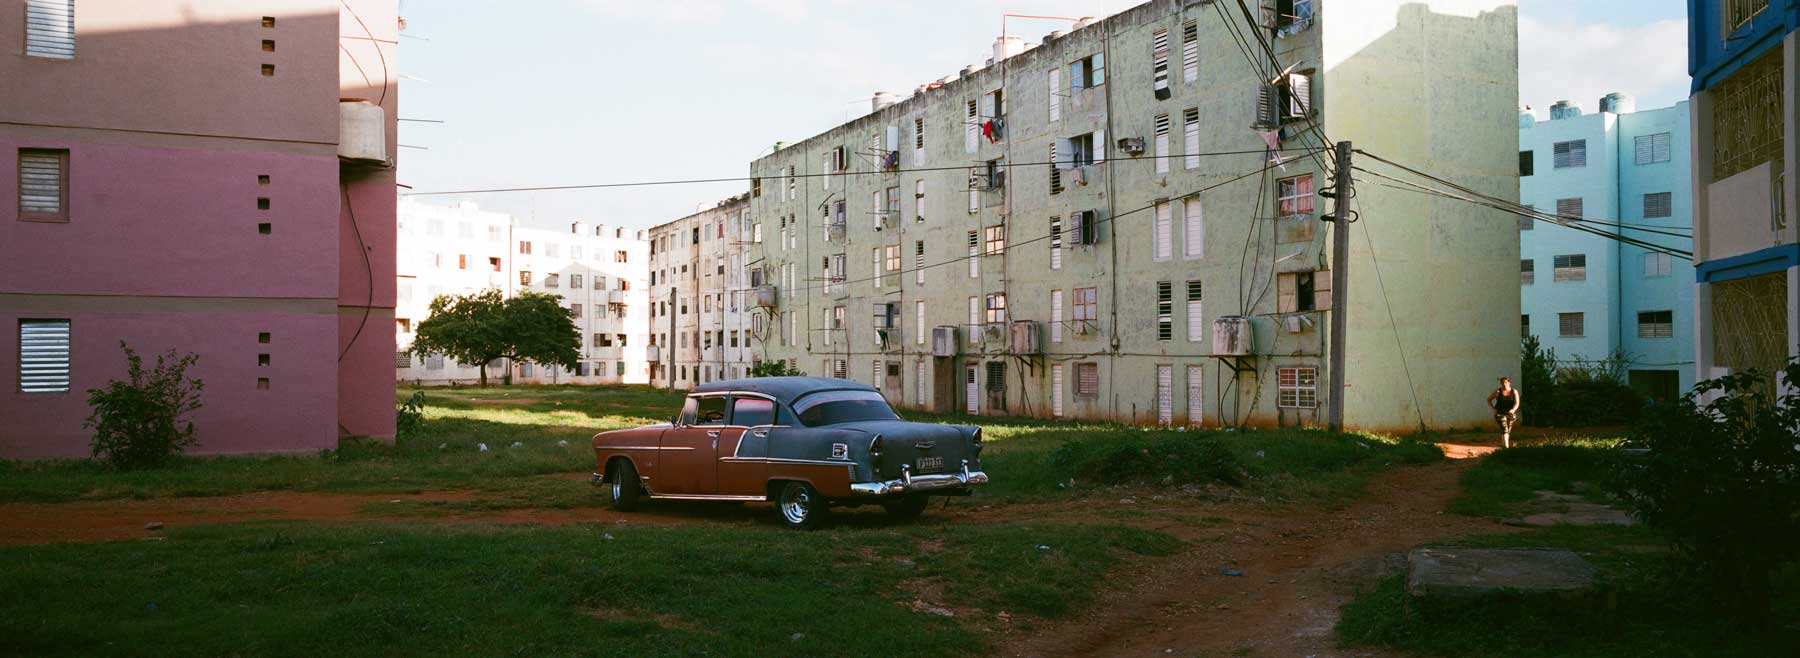 hasselblad-xpan-ii-review-hassel-rangefinder-camera-film-camera-review-photography-pano-panorama-panoramic-45mm-f4-public-housing-trinidad-cuba-classic-car-woman-under-sunglight-composition-street-snap